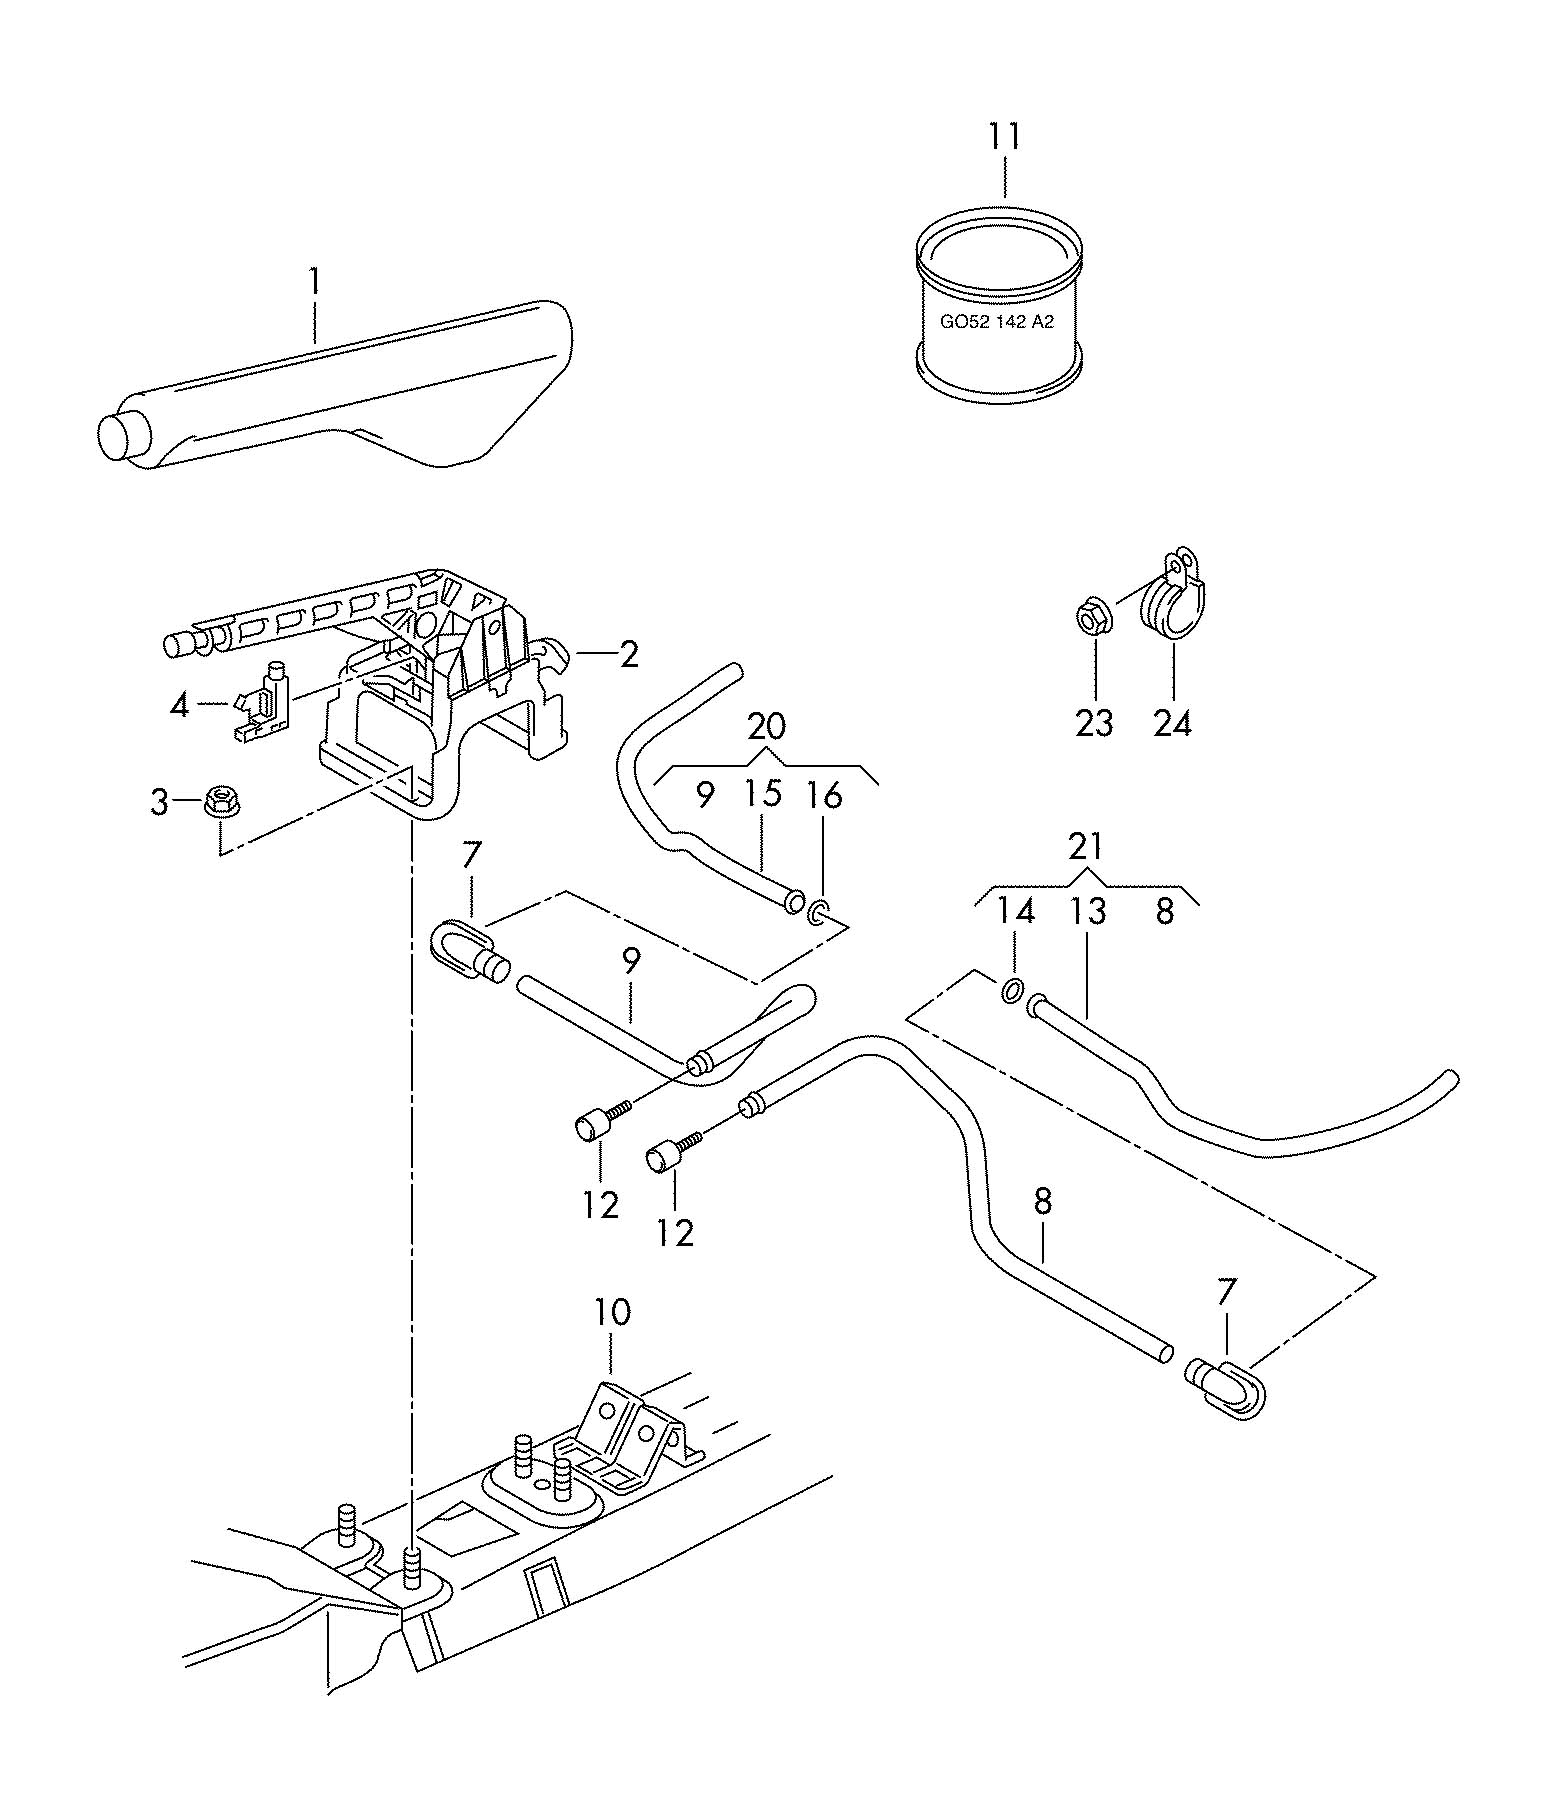 2012 Volkswagen Guide tube for hand brake cable